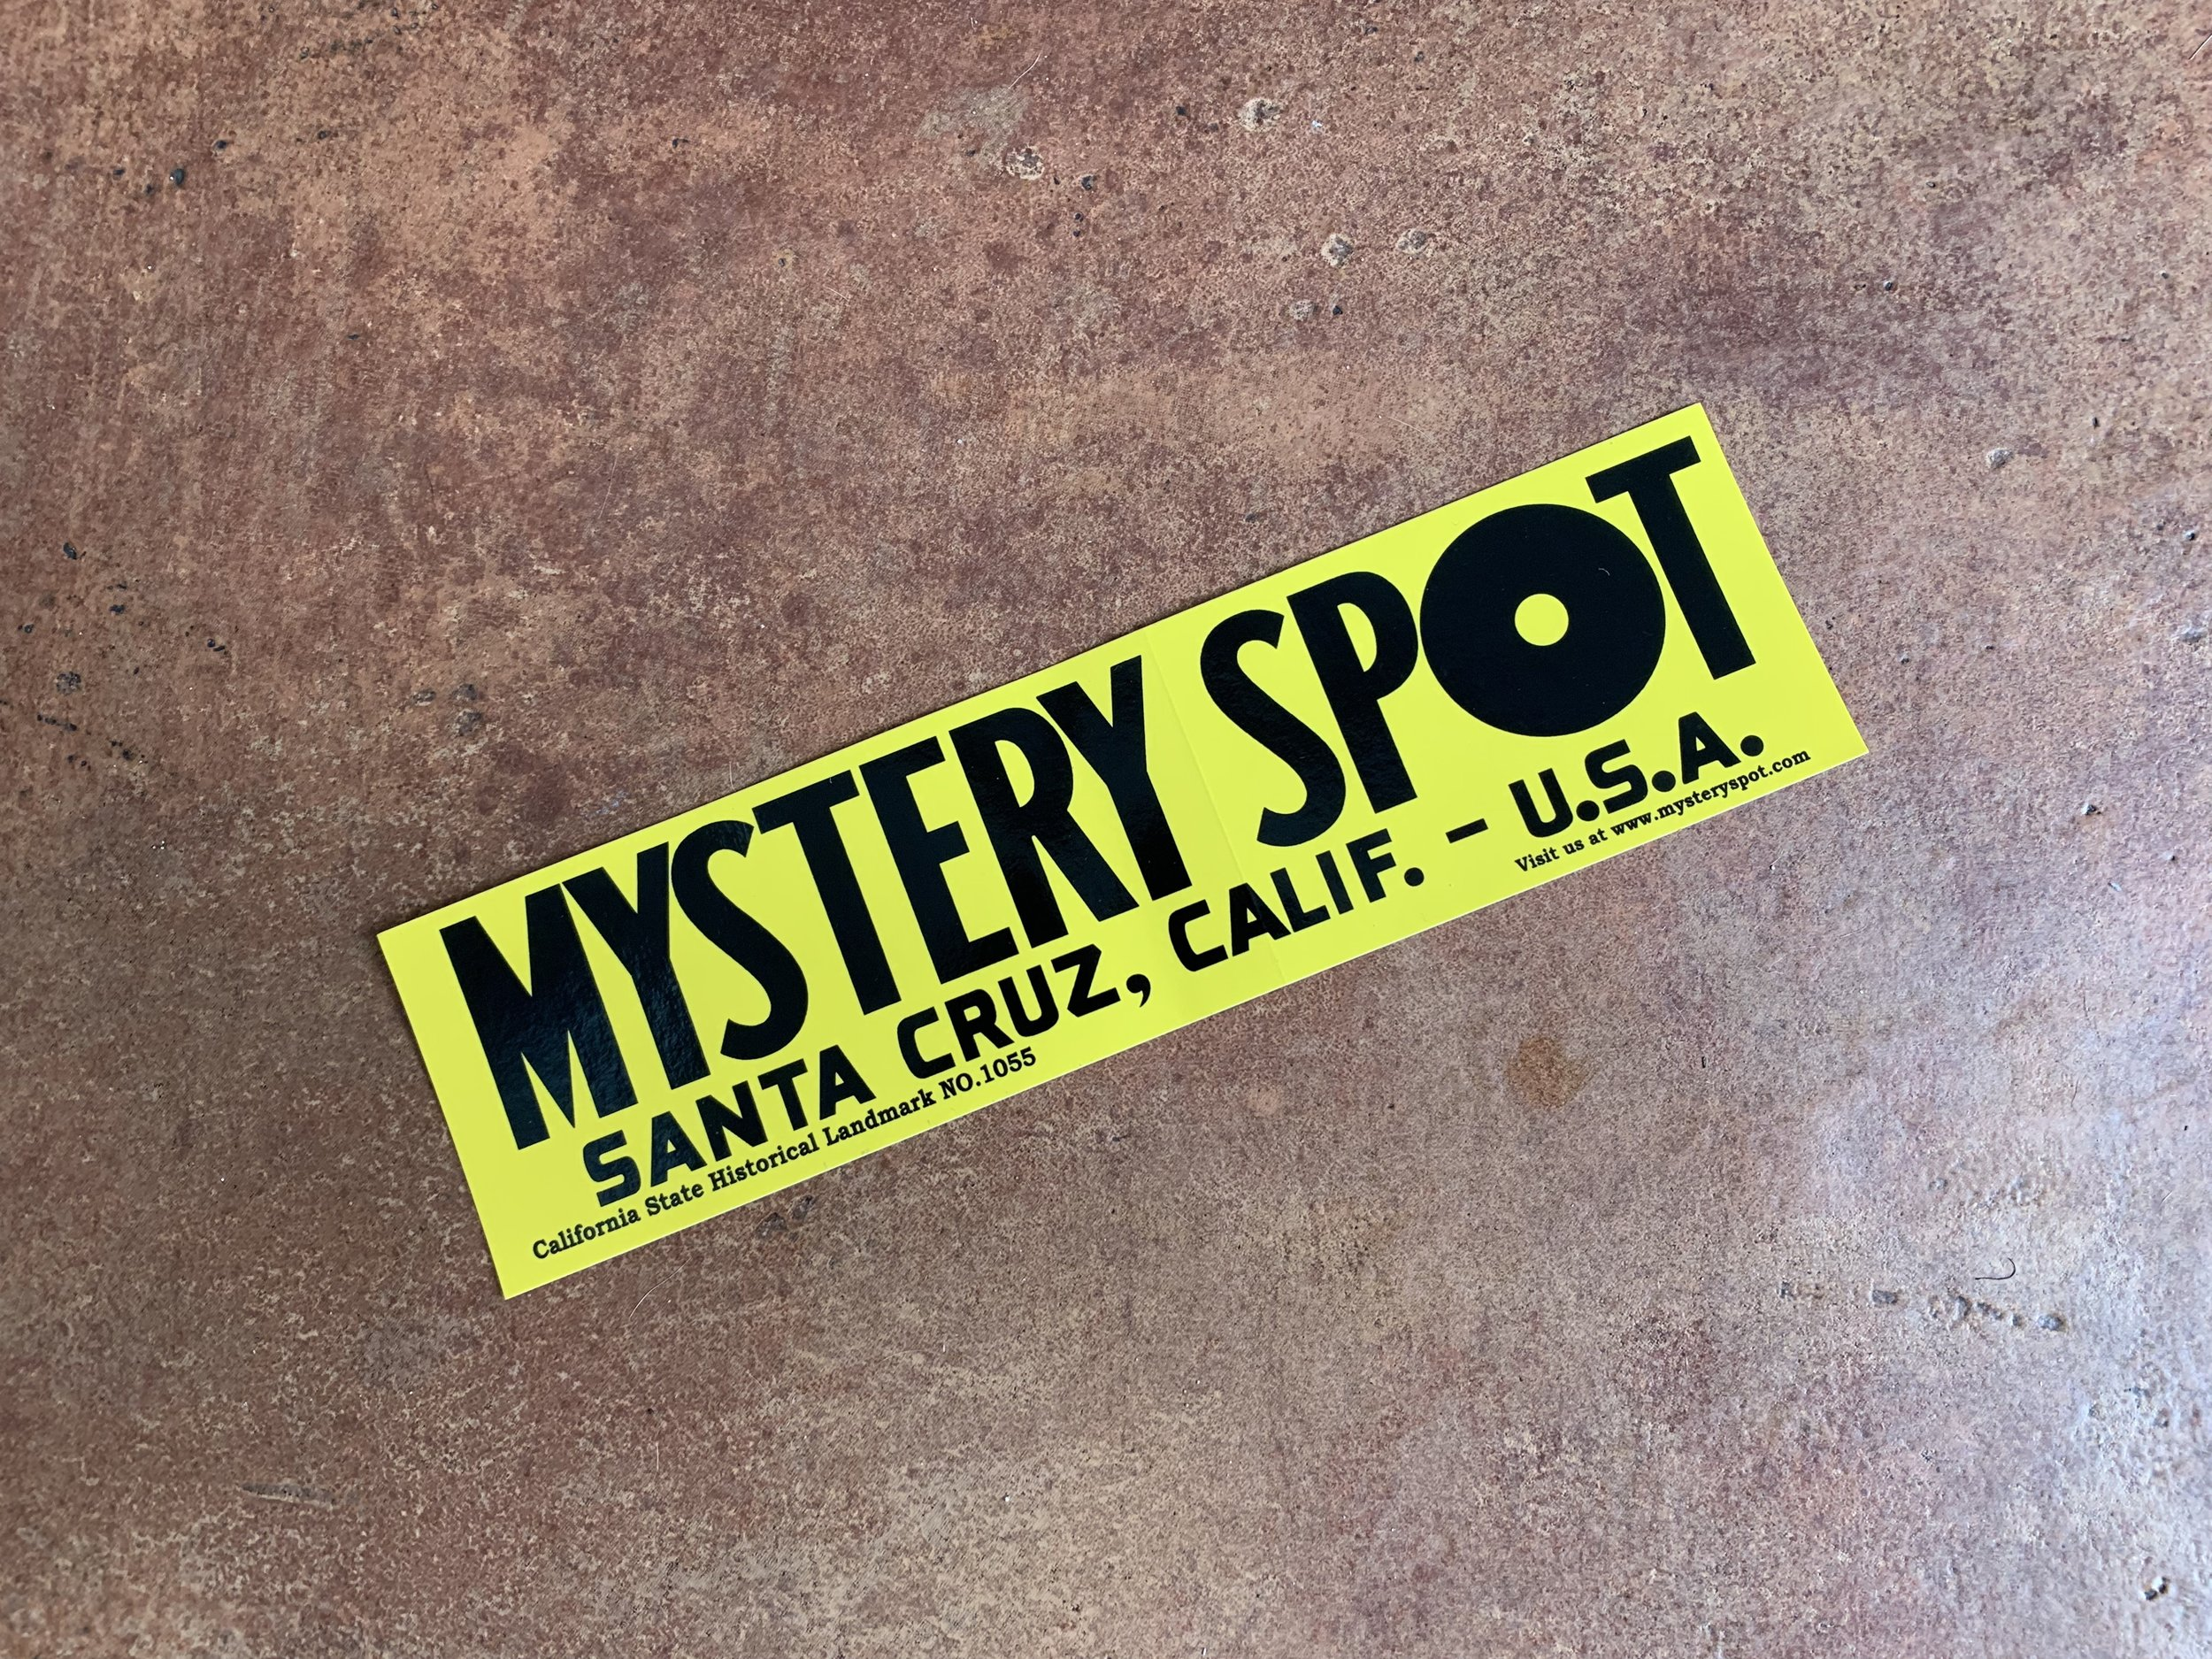 The highly revered and coveted Mystery Spot bumper sticker. You know you want one.